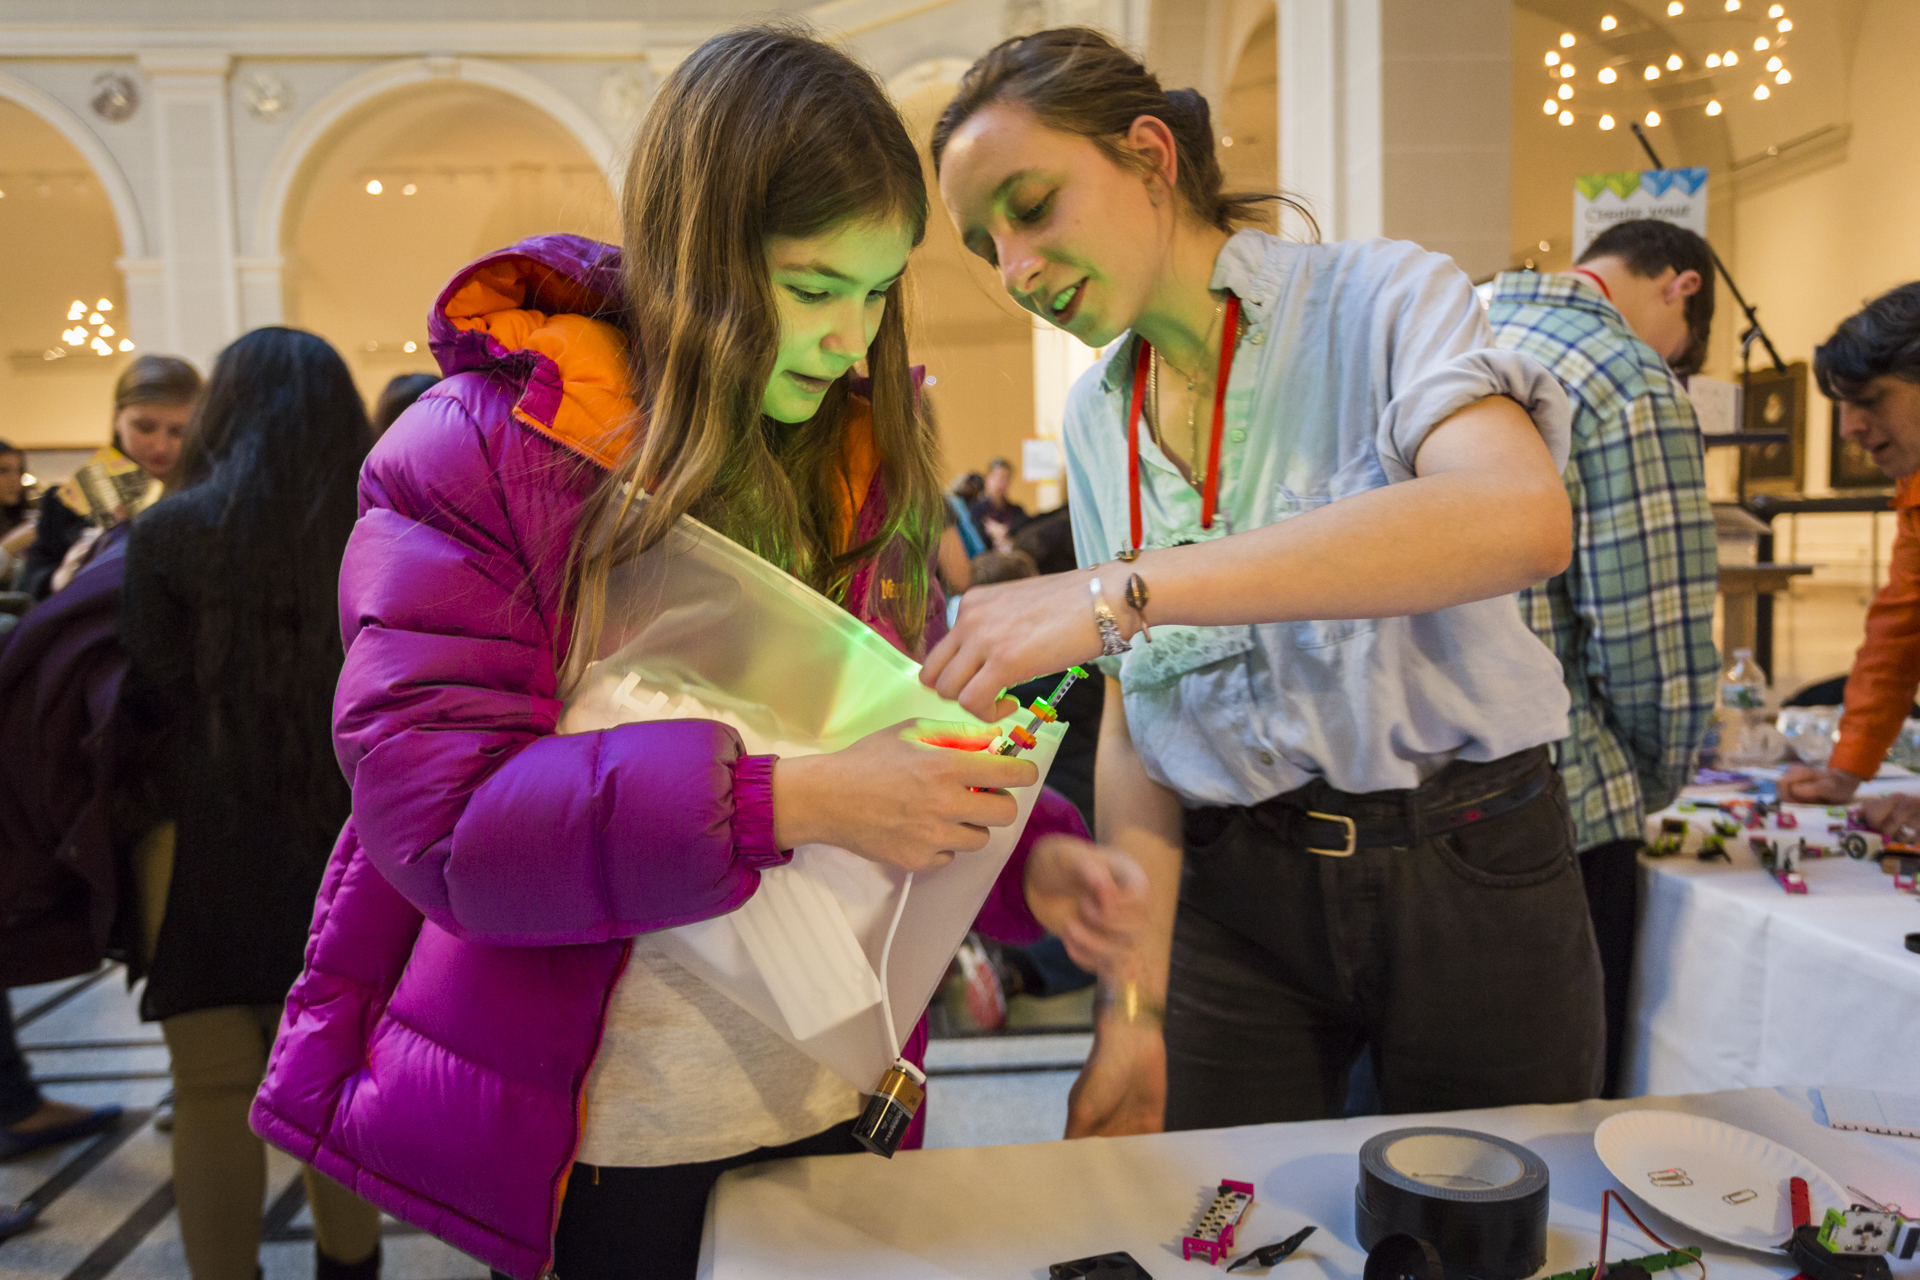 An attendee creates an LED light with magnetic littleBits blocks. Photo: Ryan Lash/TED